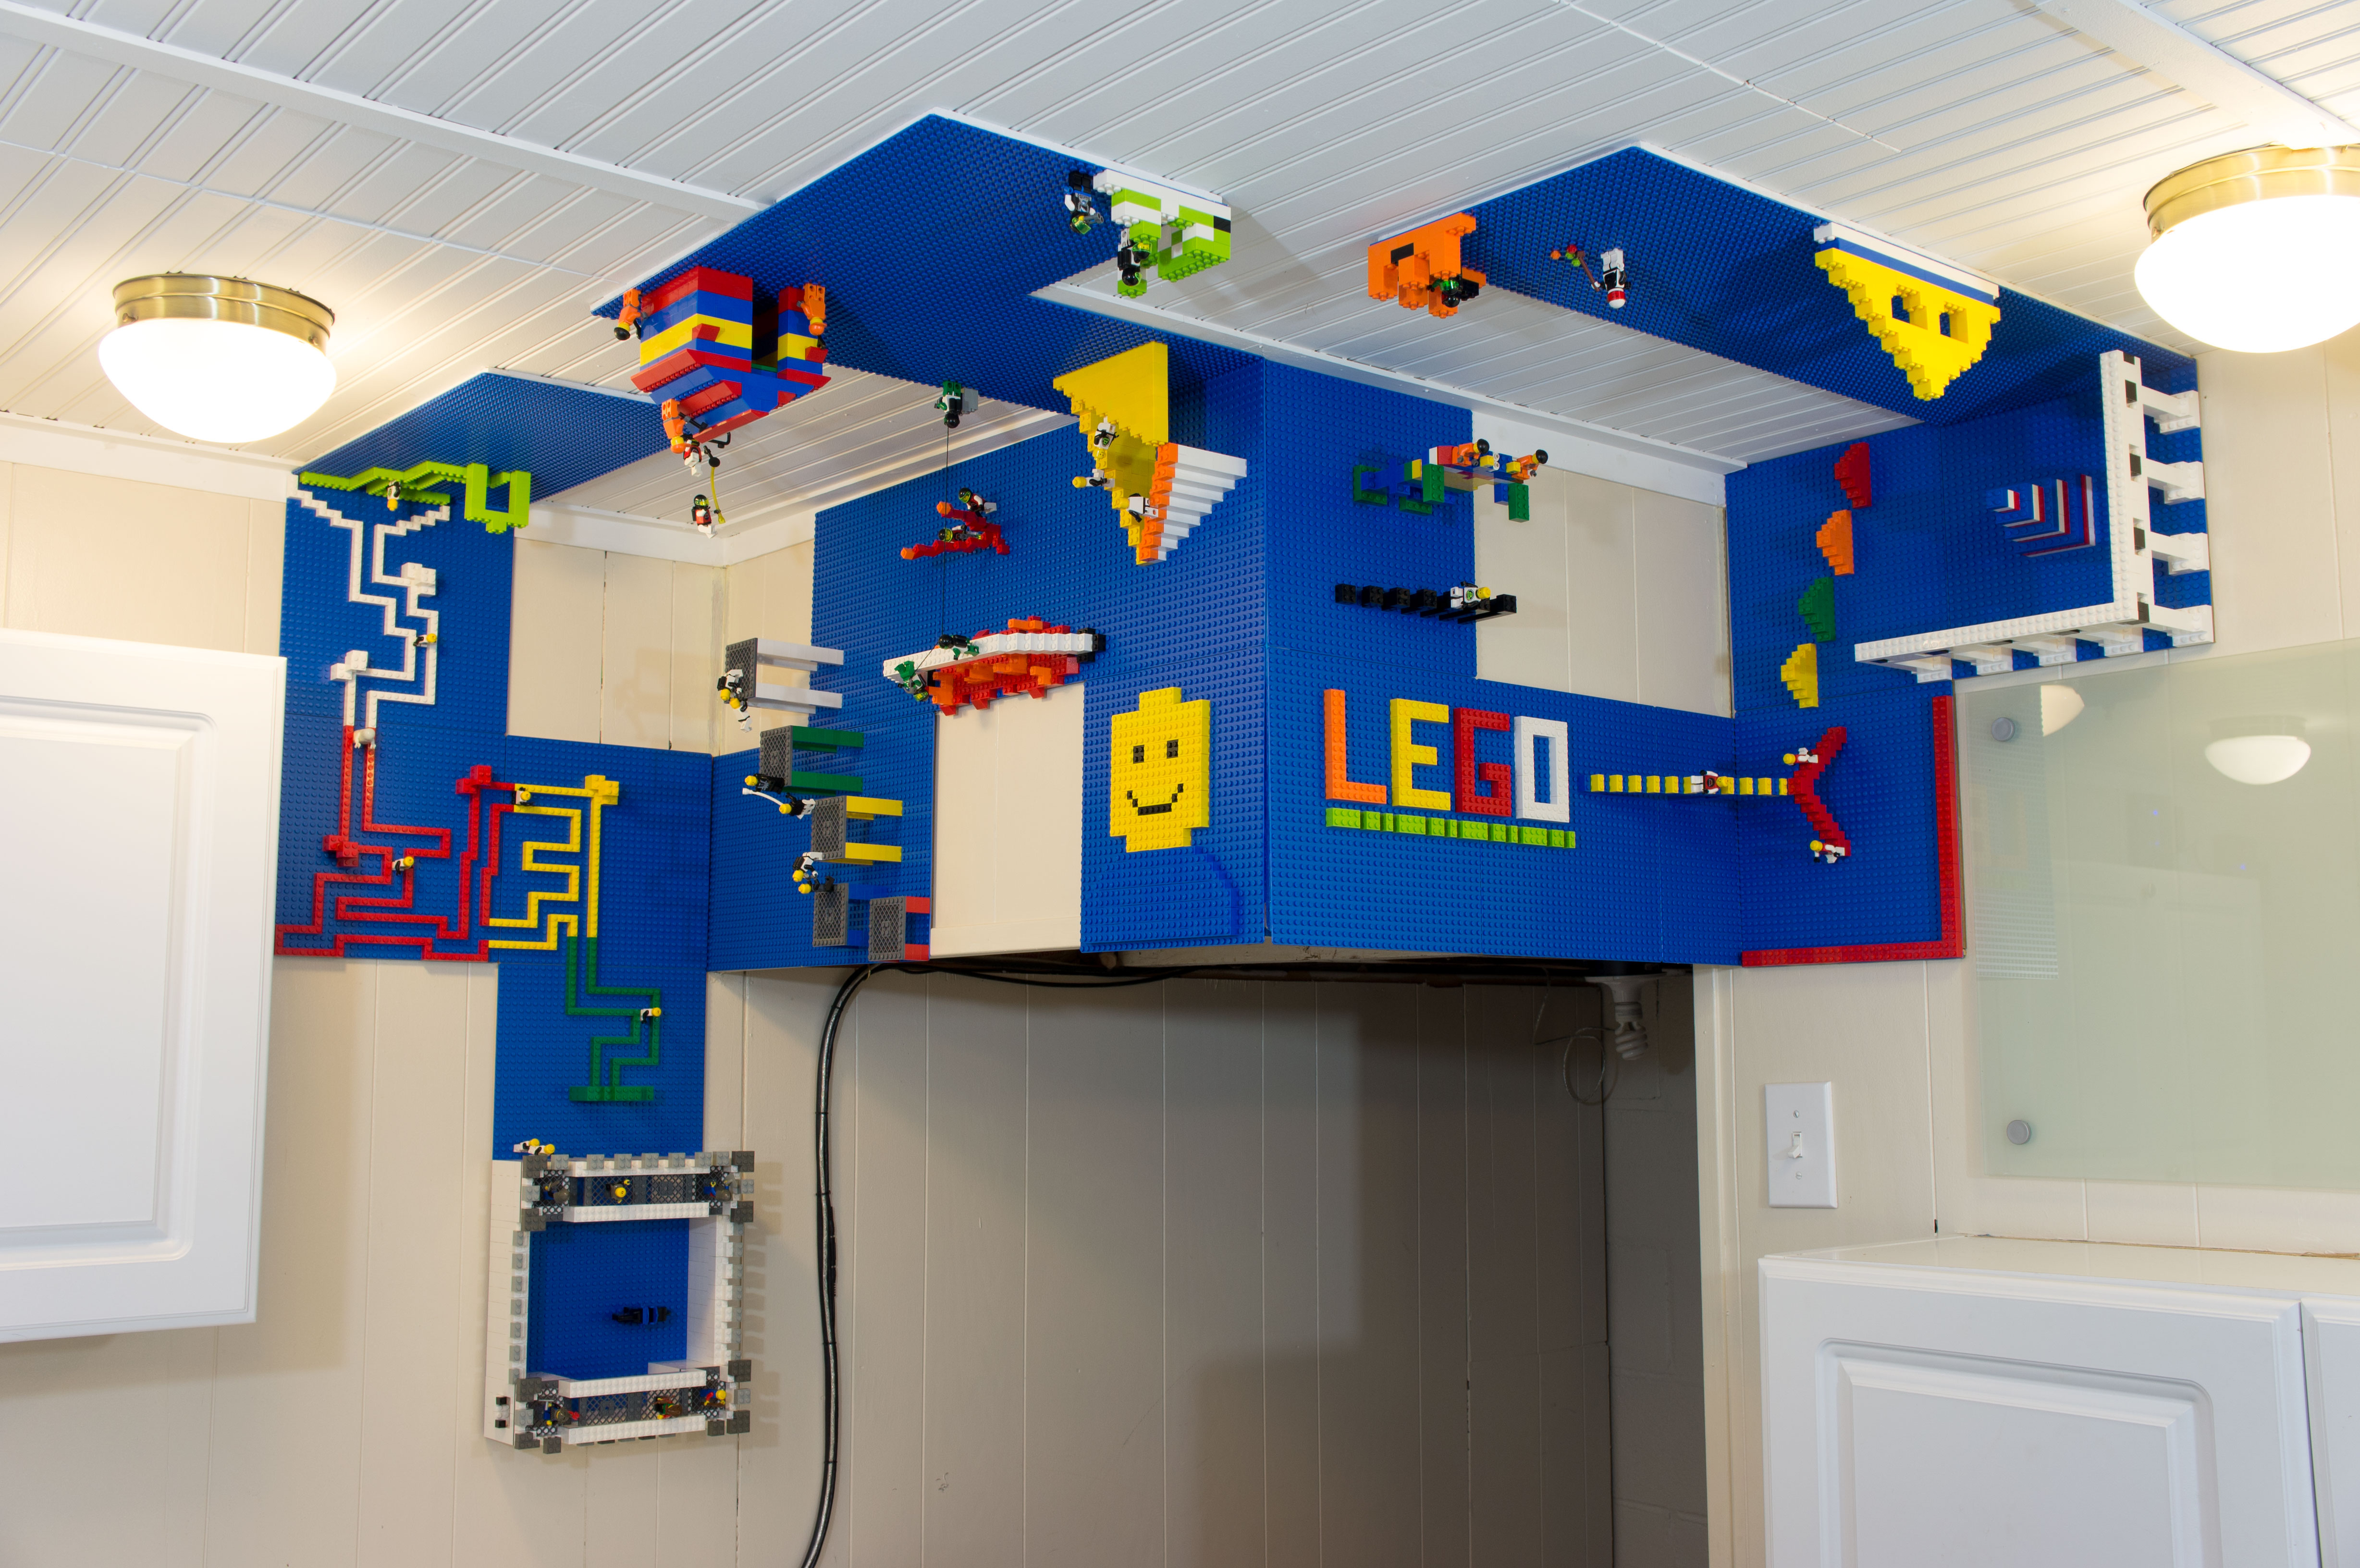 Lego Wall and Ceiling Build Area | Total Geekdom